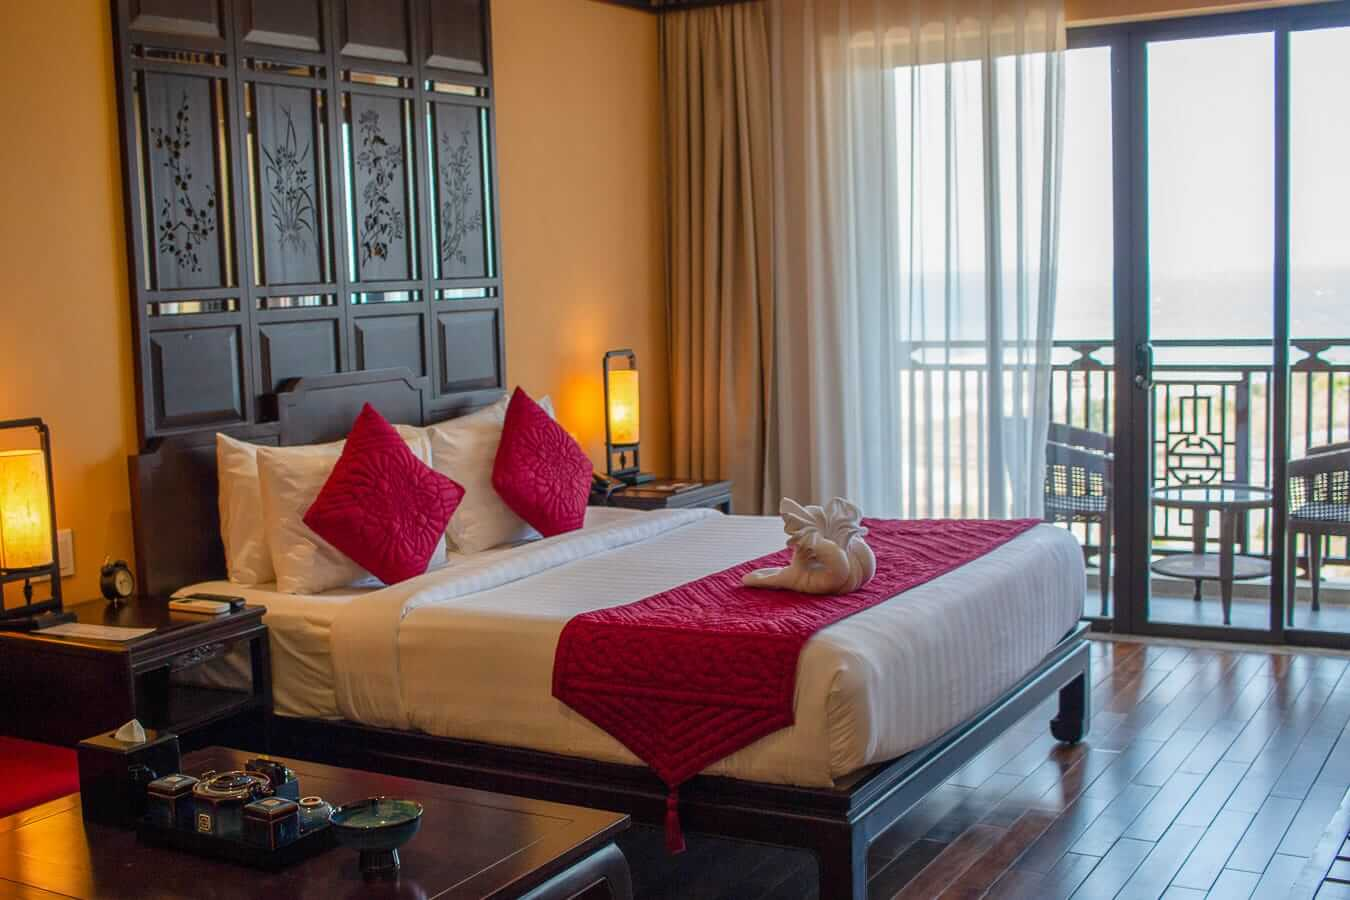 Little Beach Hoi An Boutique Hotel: Where to stay in Hoi An